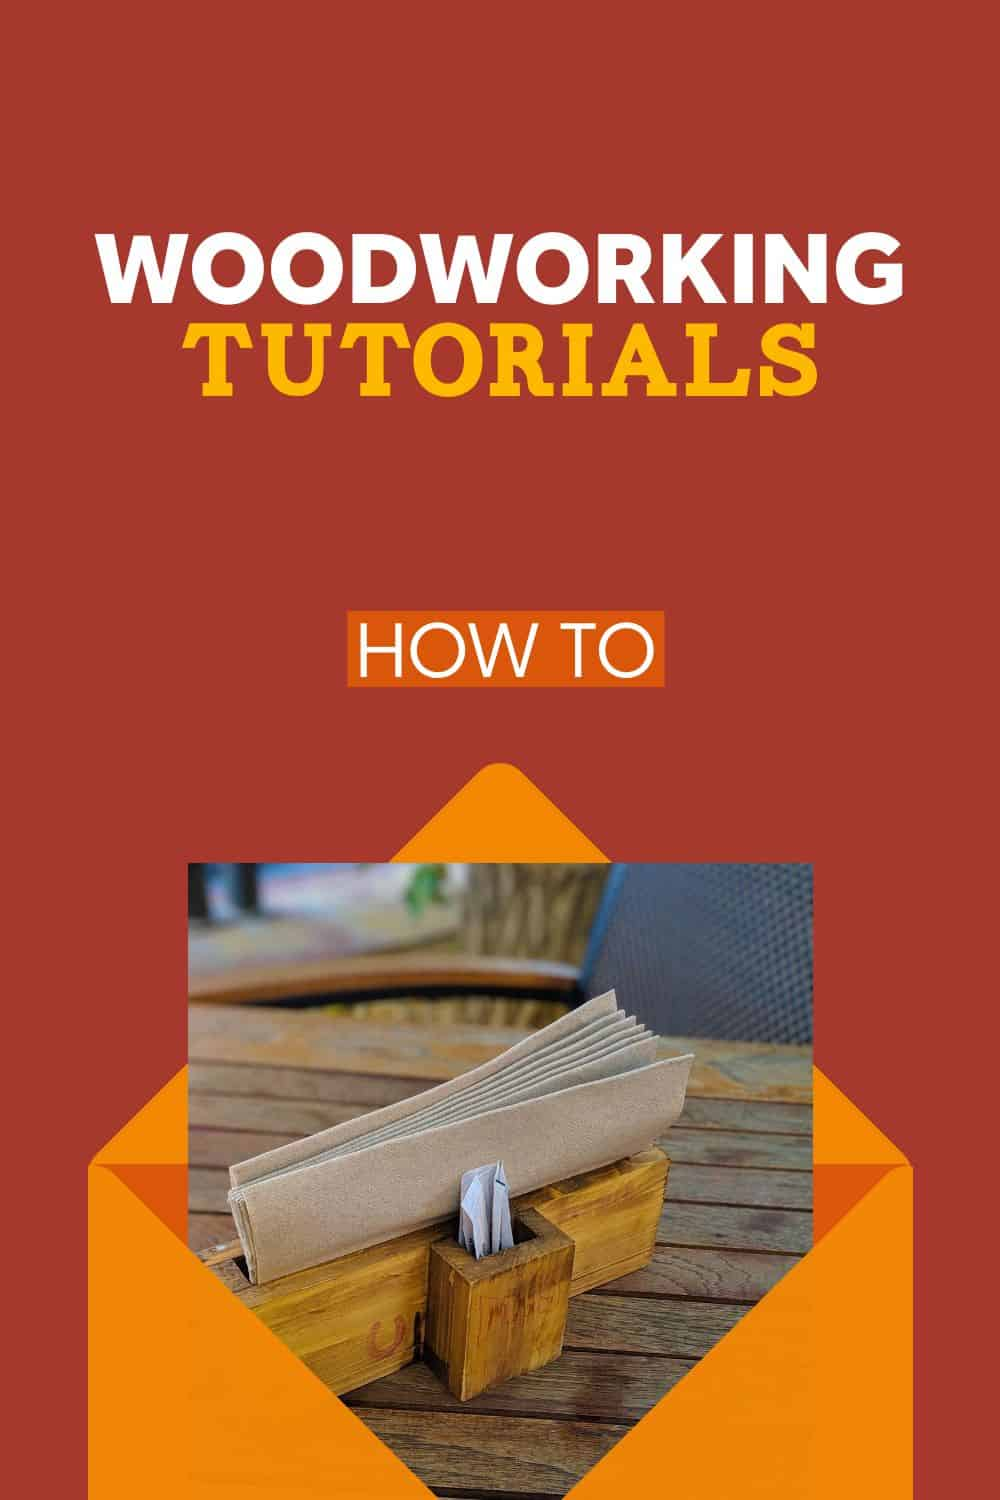 Woodworking Tutorial: Where to Learn What You Need to Know